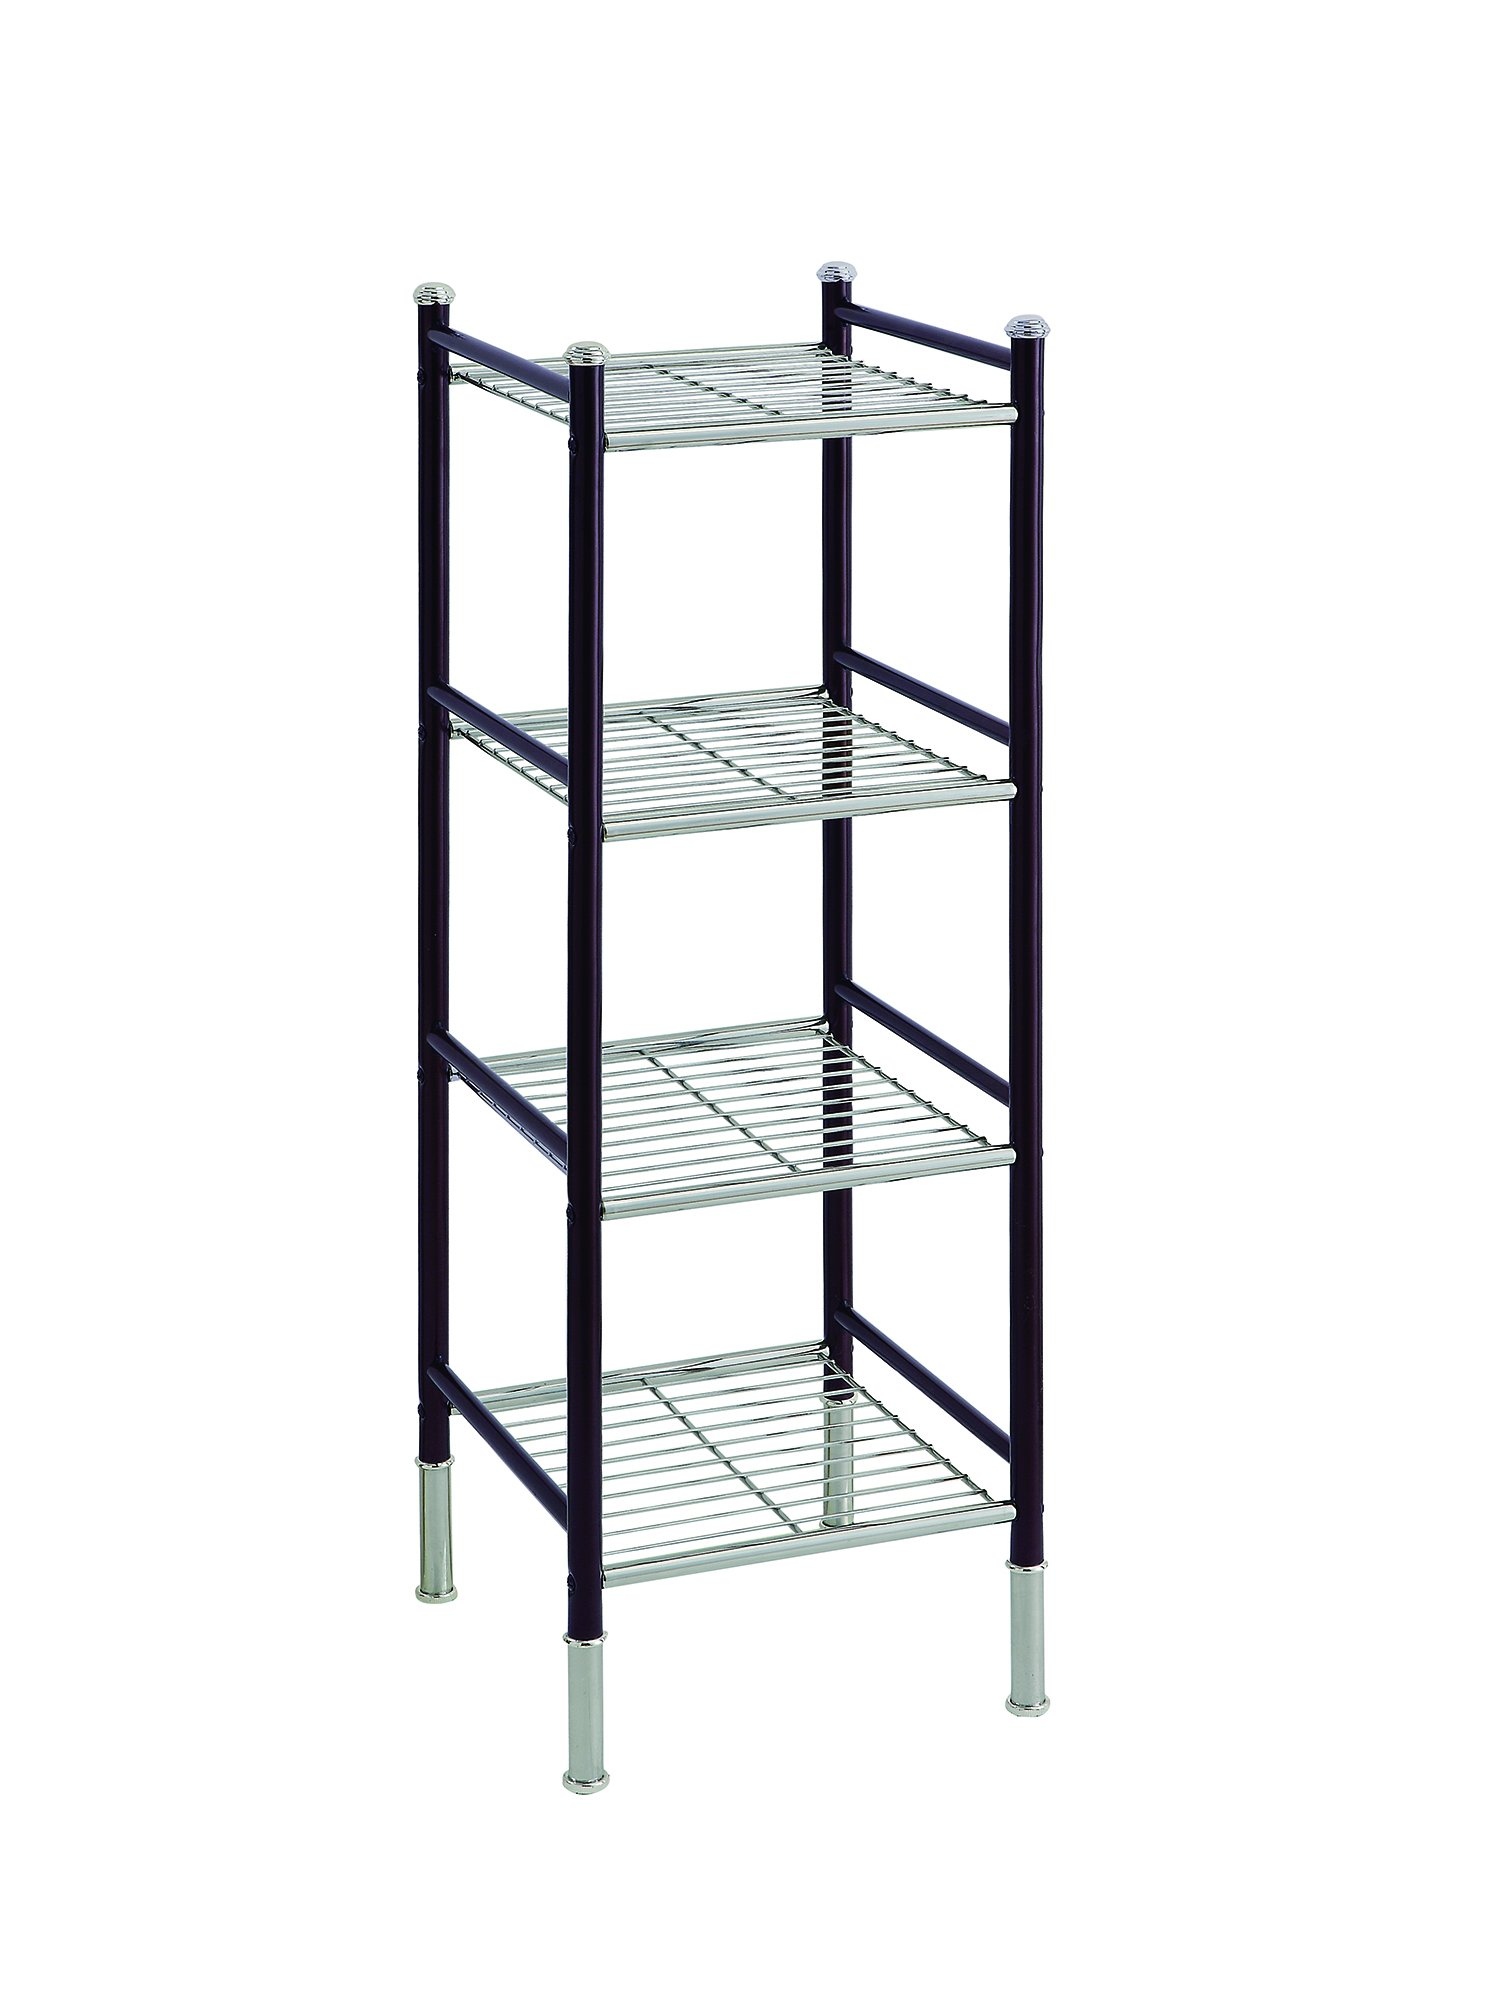 Organize It All 4 Tier Free Standing Bathroom Storage Tower, Chrome & Bronze